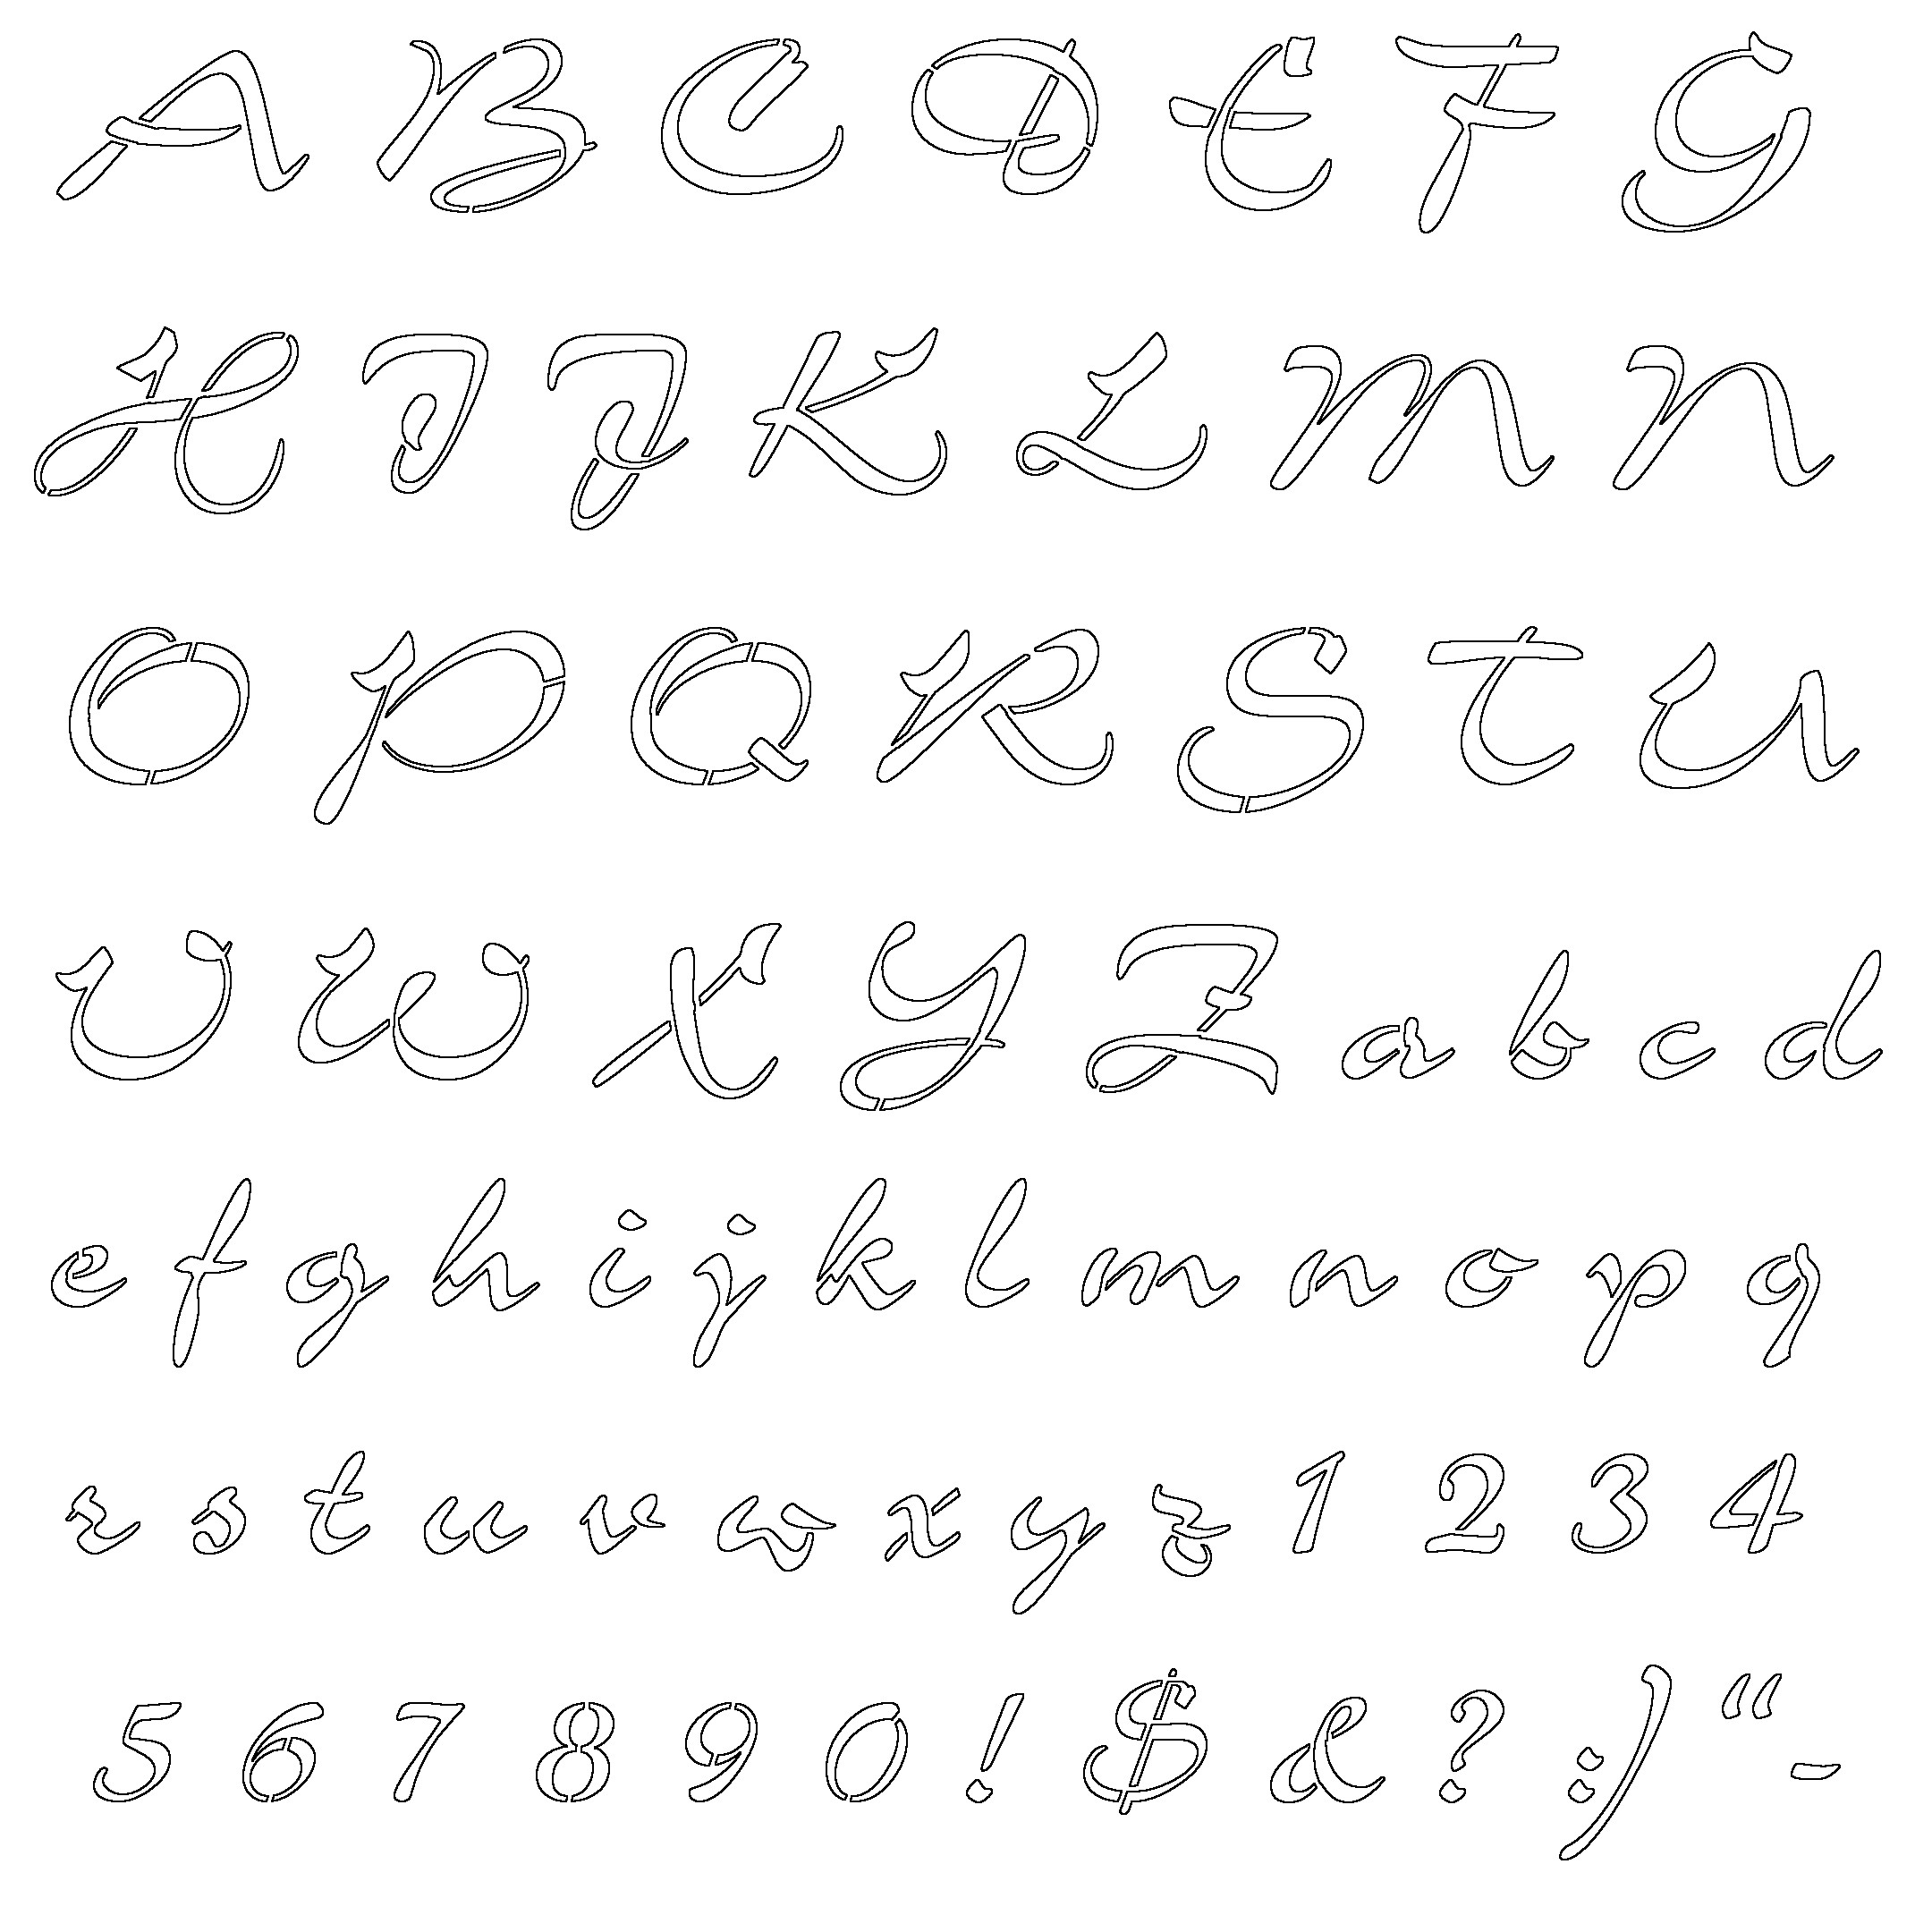 Letter Number Stencils Printable Refrence Free Alphabet Cover Large - Free Printable Calligraphy Letter Stencils